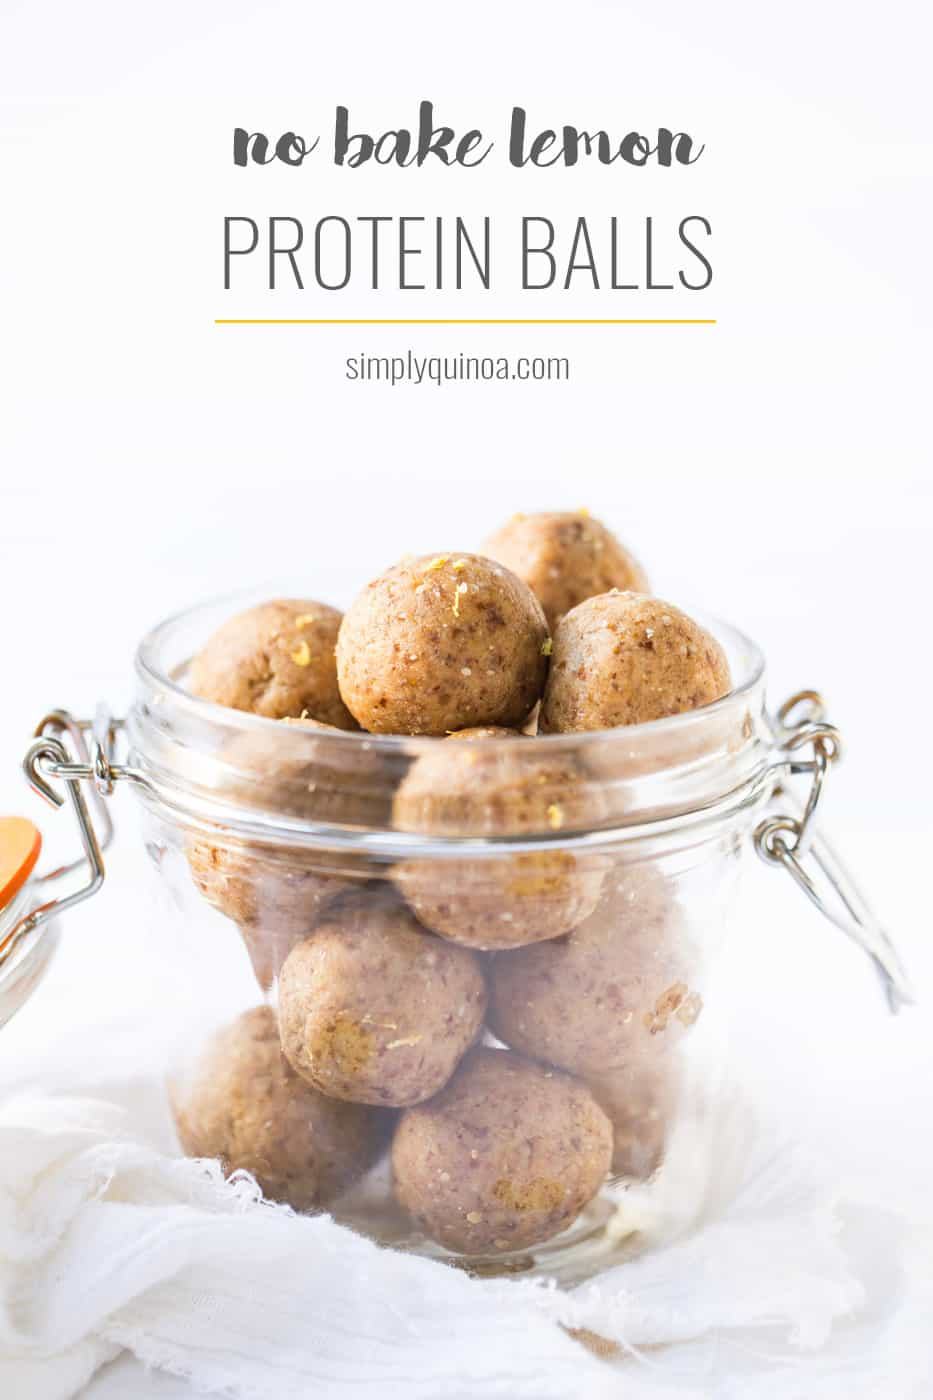 These NO BAKE Lemon Protein Balls are the perfect healthy snack to take on the go. Packed with protein, healthy fats and carbs to fuel you all day long!